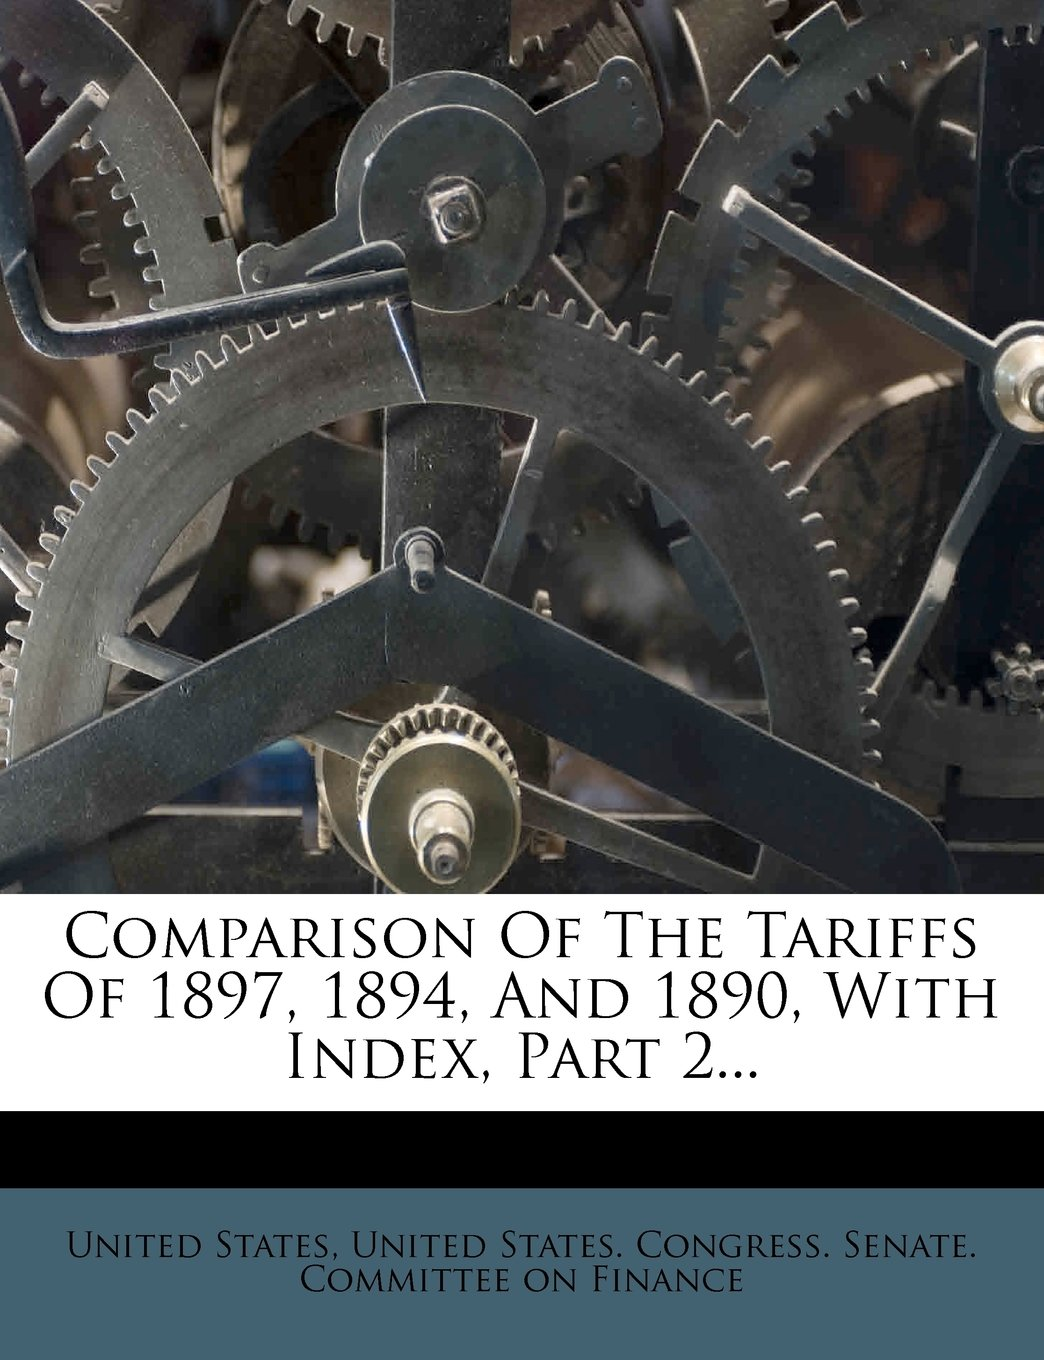 Comparison Of The Tariffs Of 1897, 1894, And 1890, With Index, Part 2... PDF